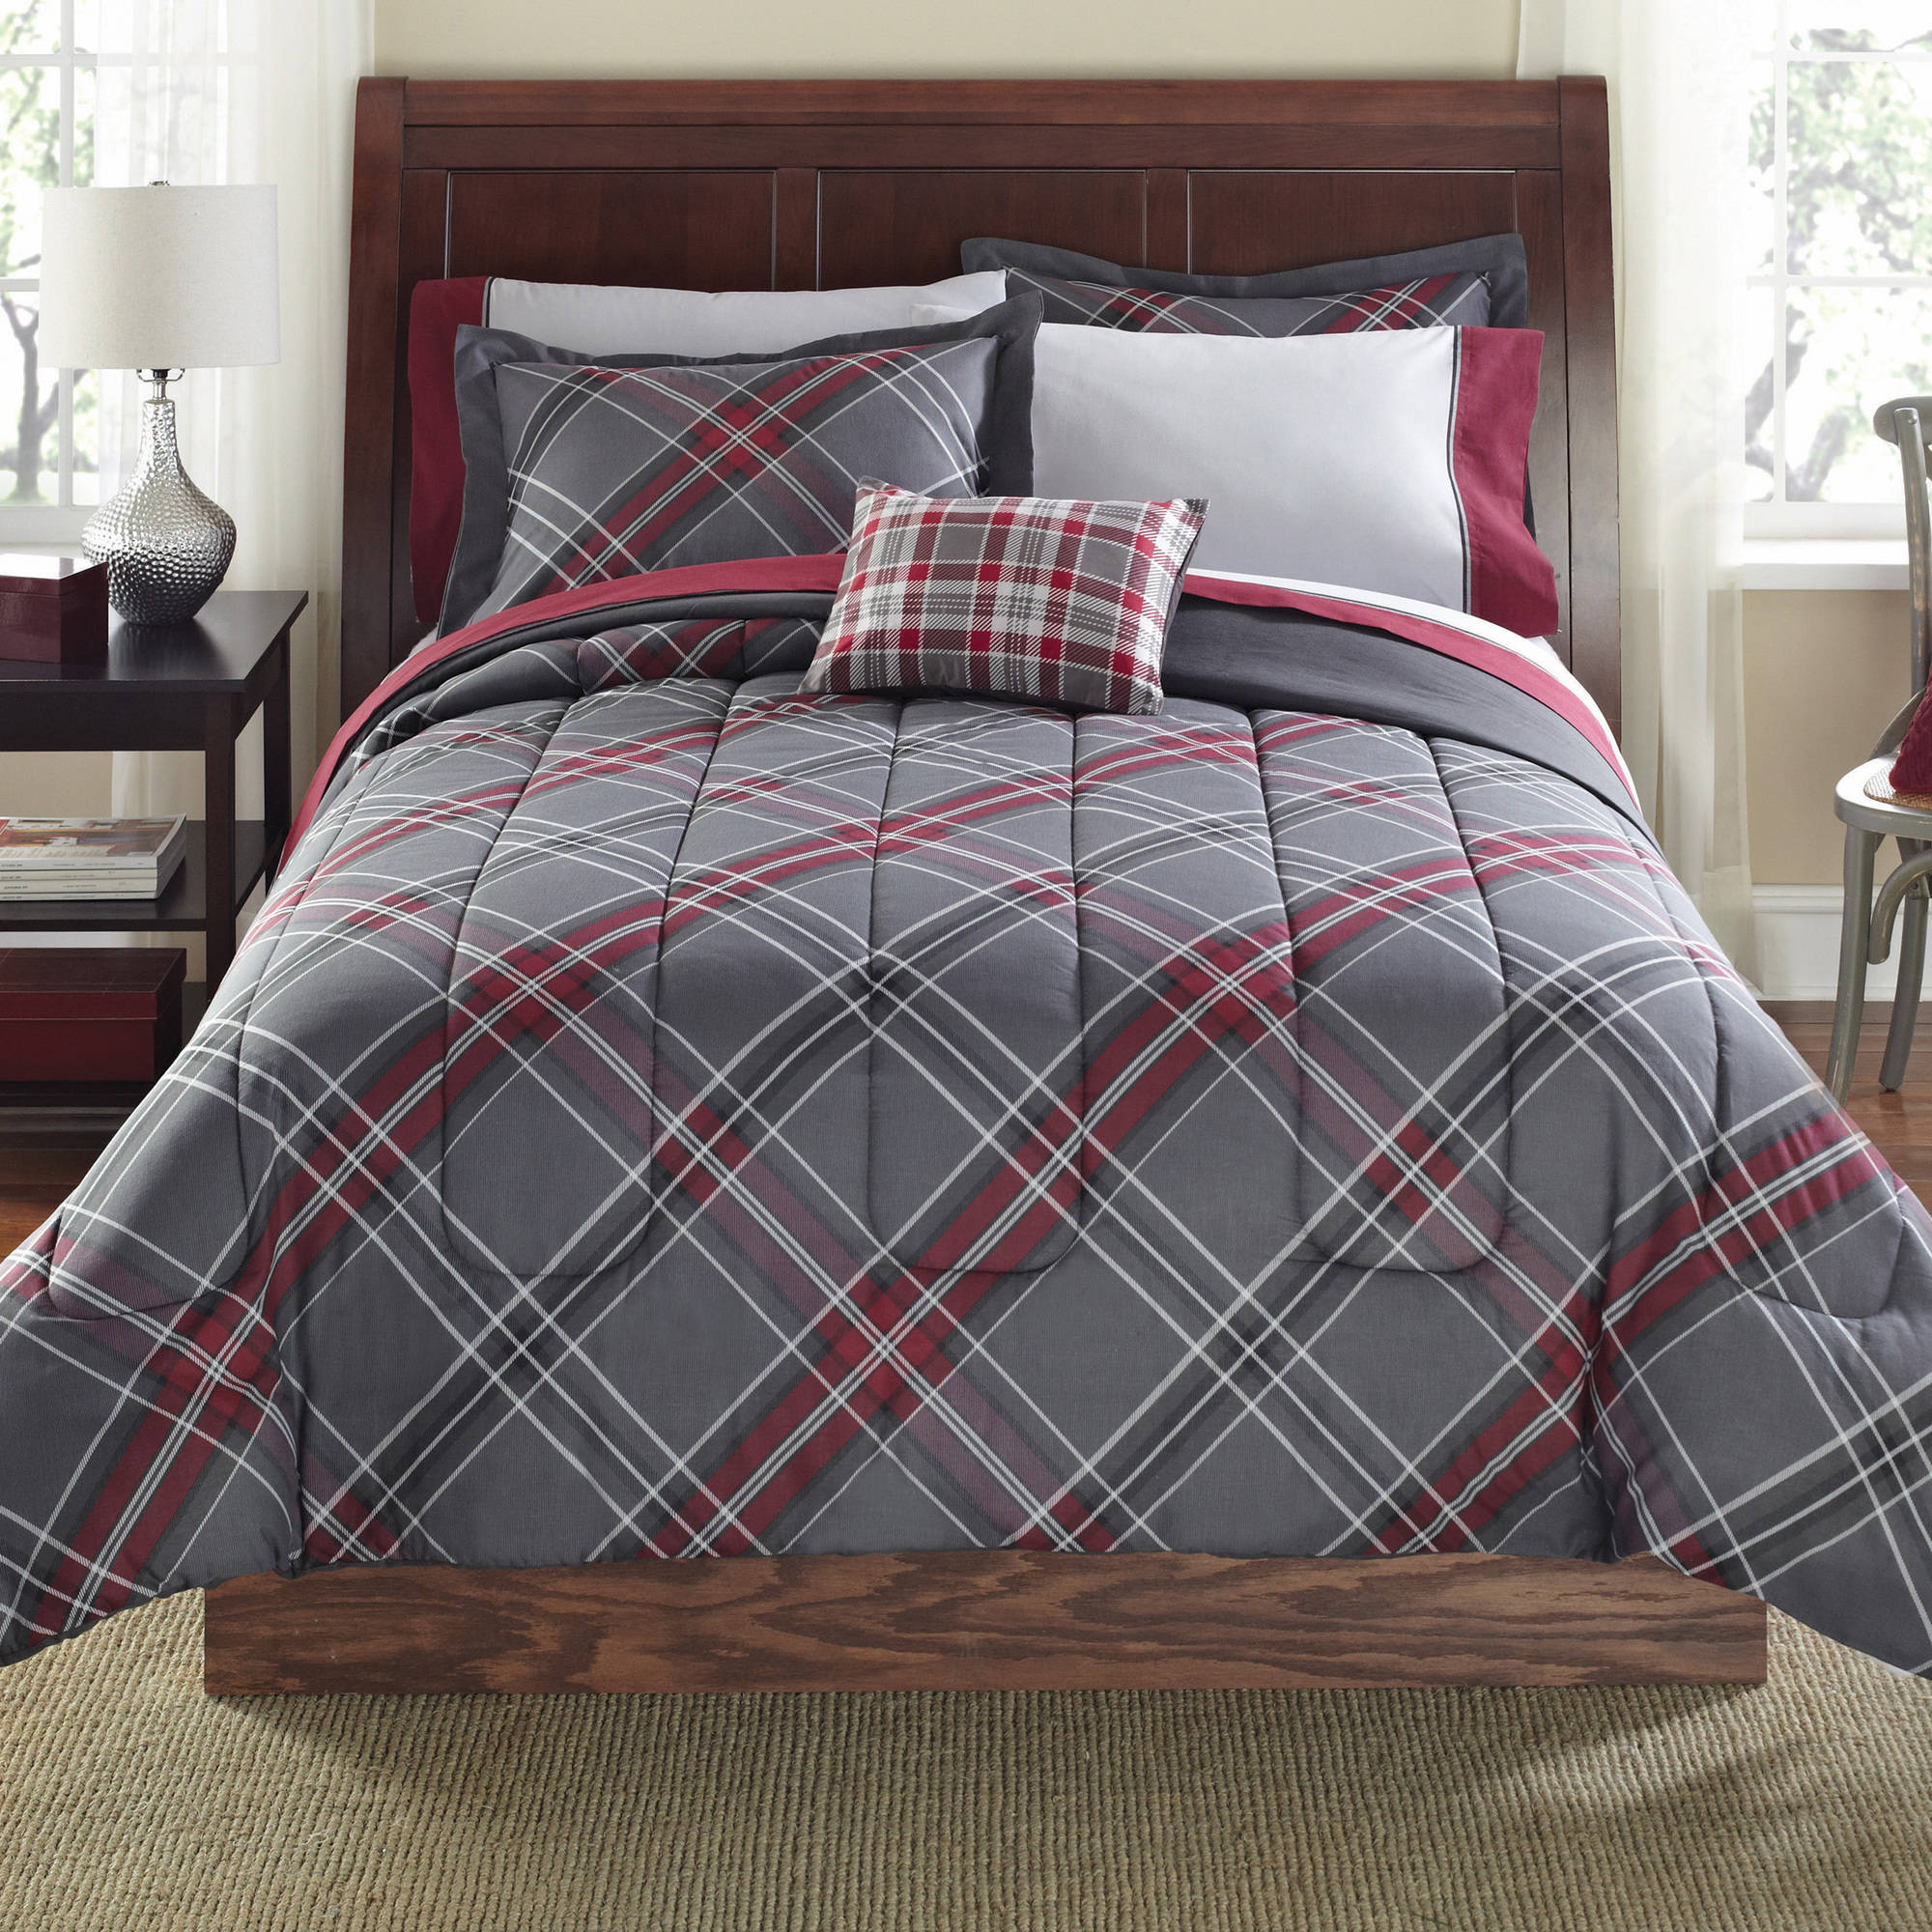 Mainstays 8 Piece Bed-in-a-Bag Bedding Comforter Set, Grey plus Red Plaid, Multiple Sizes